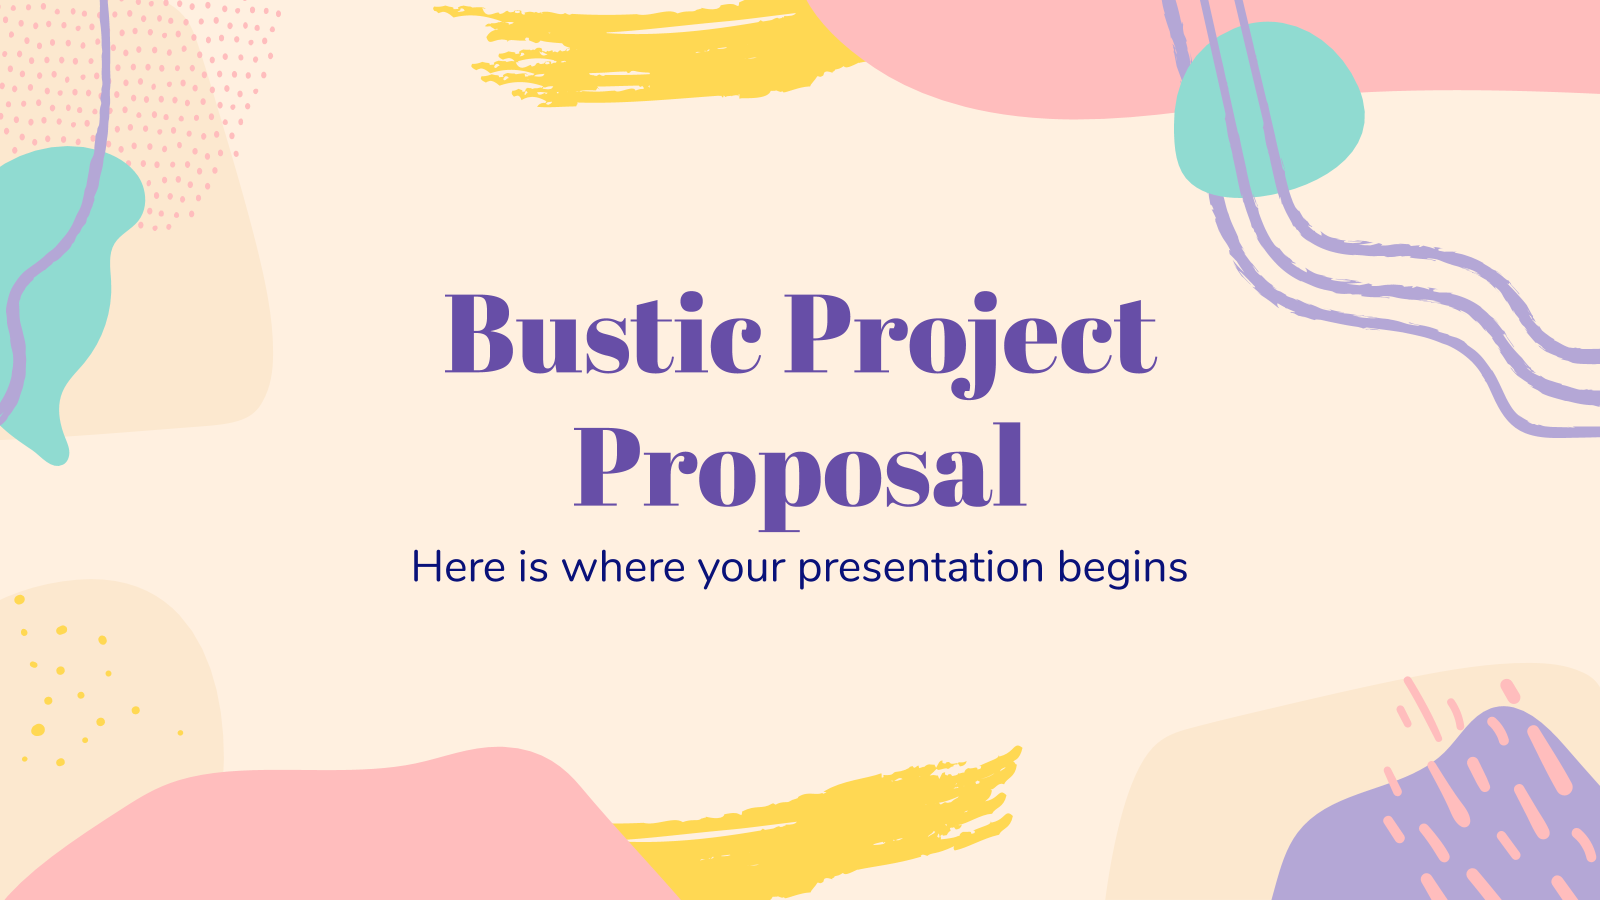 Bustic Project Proposal presentation template